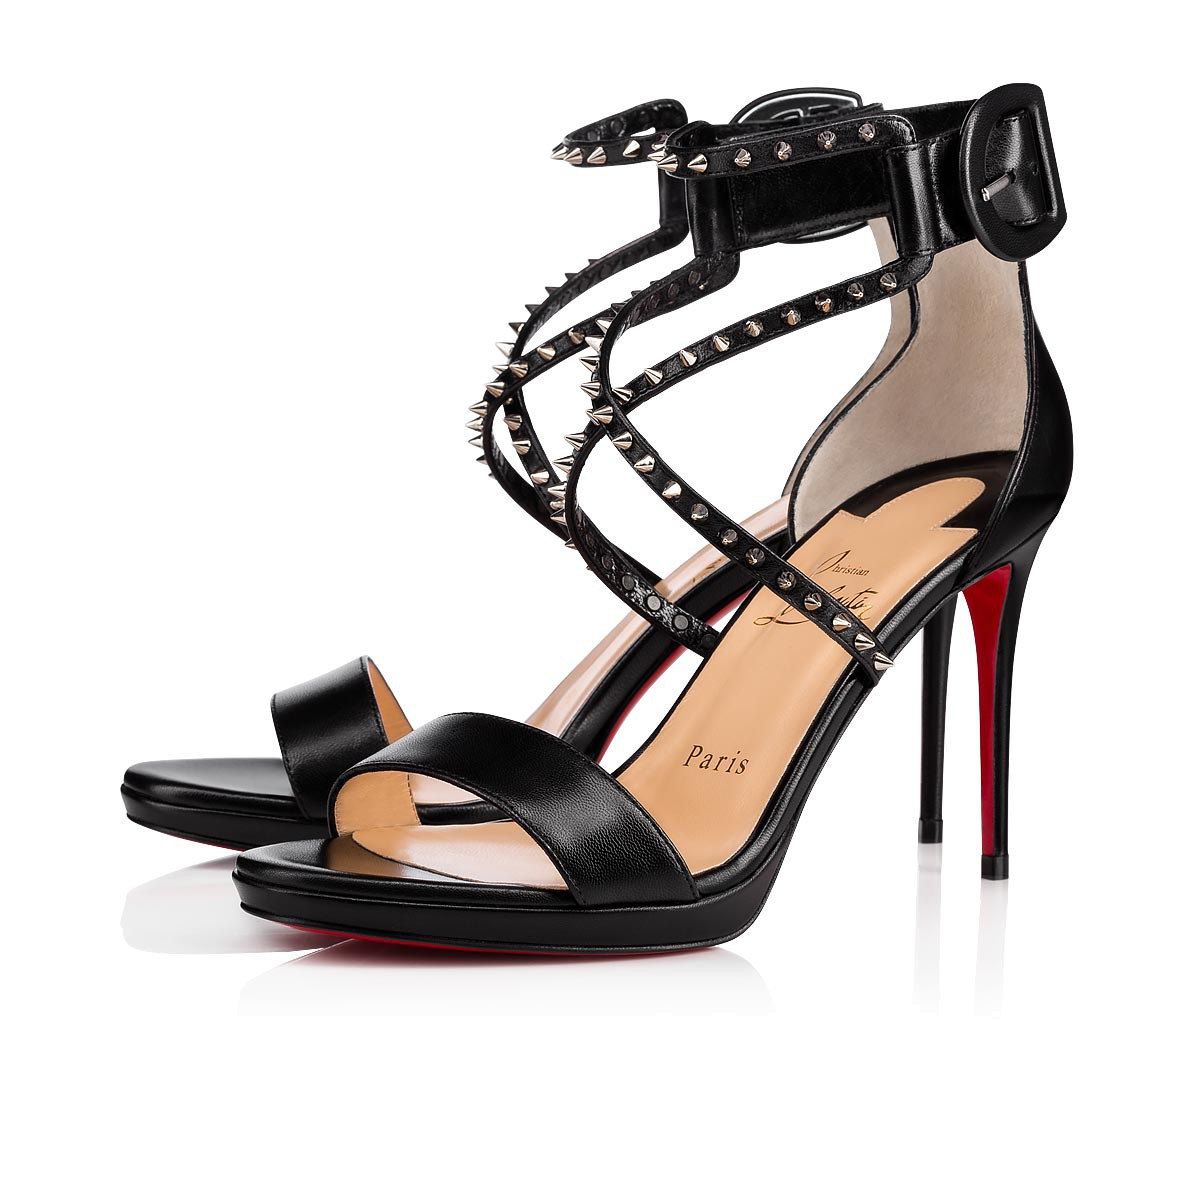 1eaac2c29ac Choca 100 BLACK/SILVER Kid - Women Shoes - Christian Louboutin